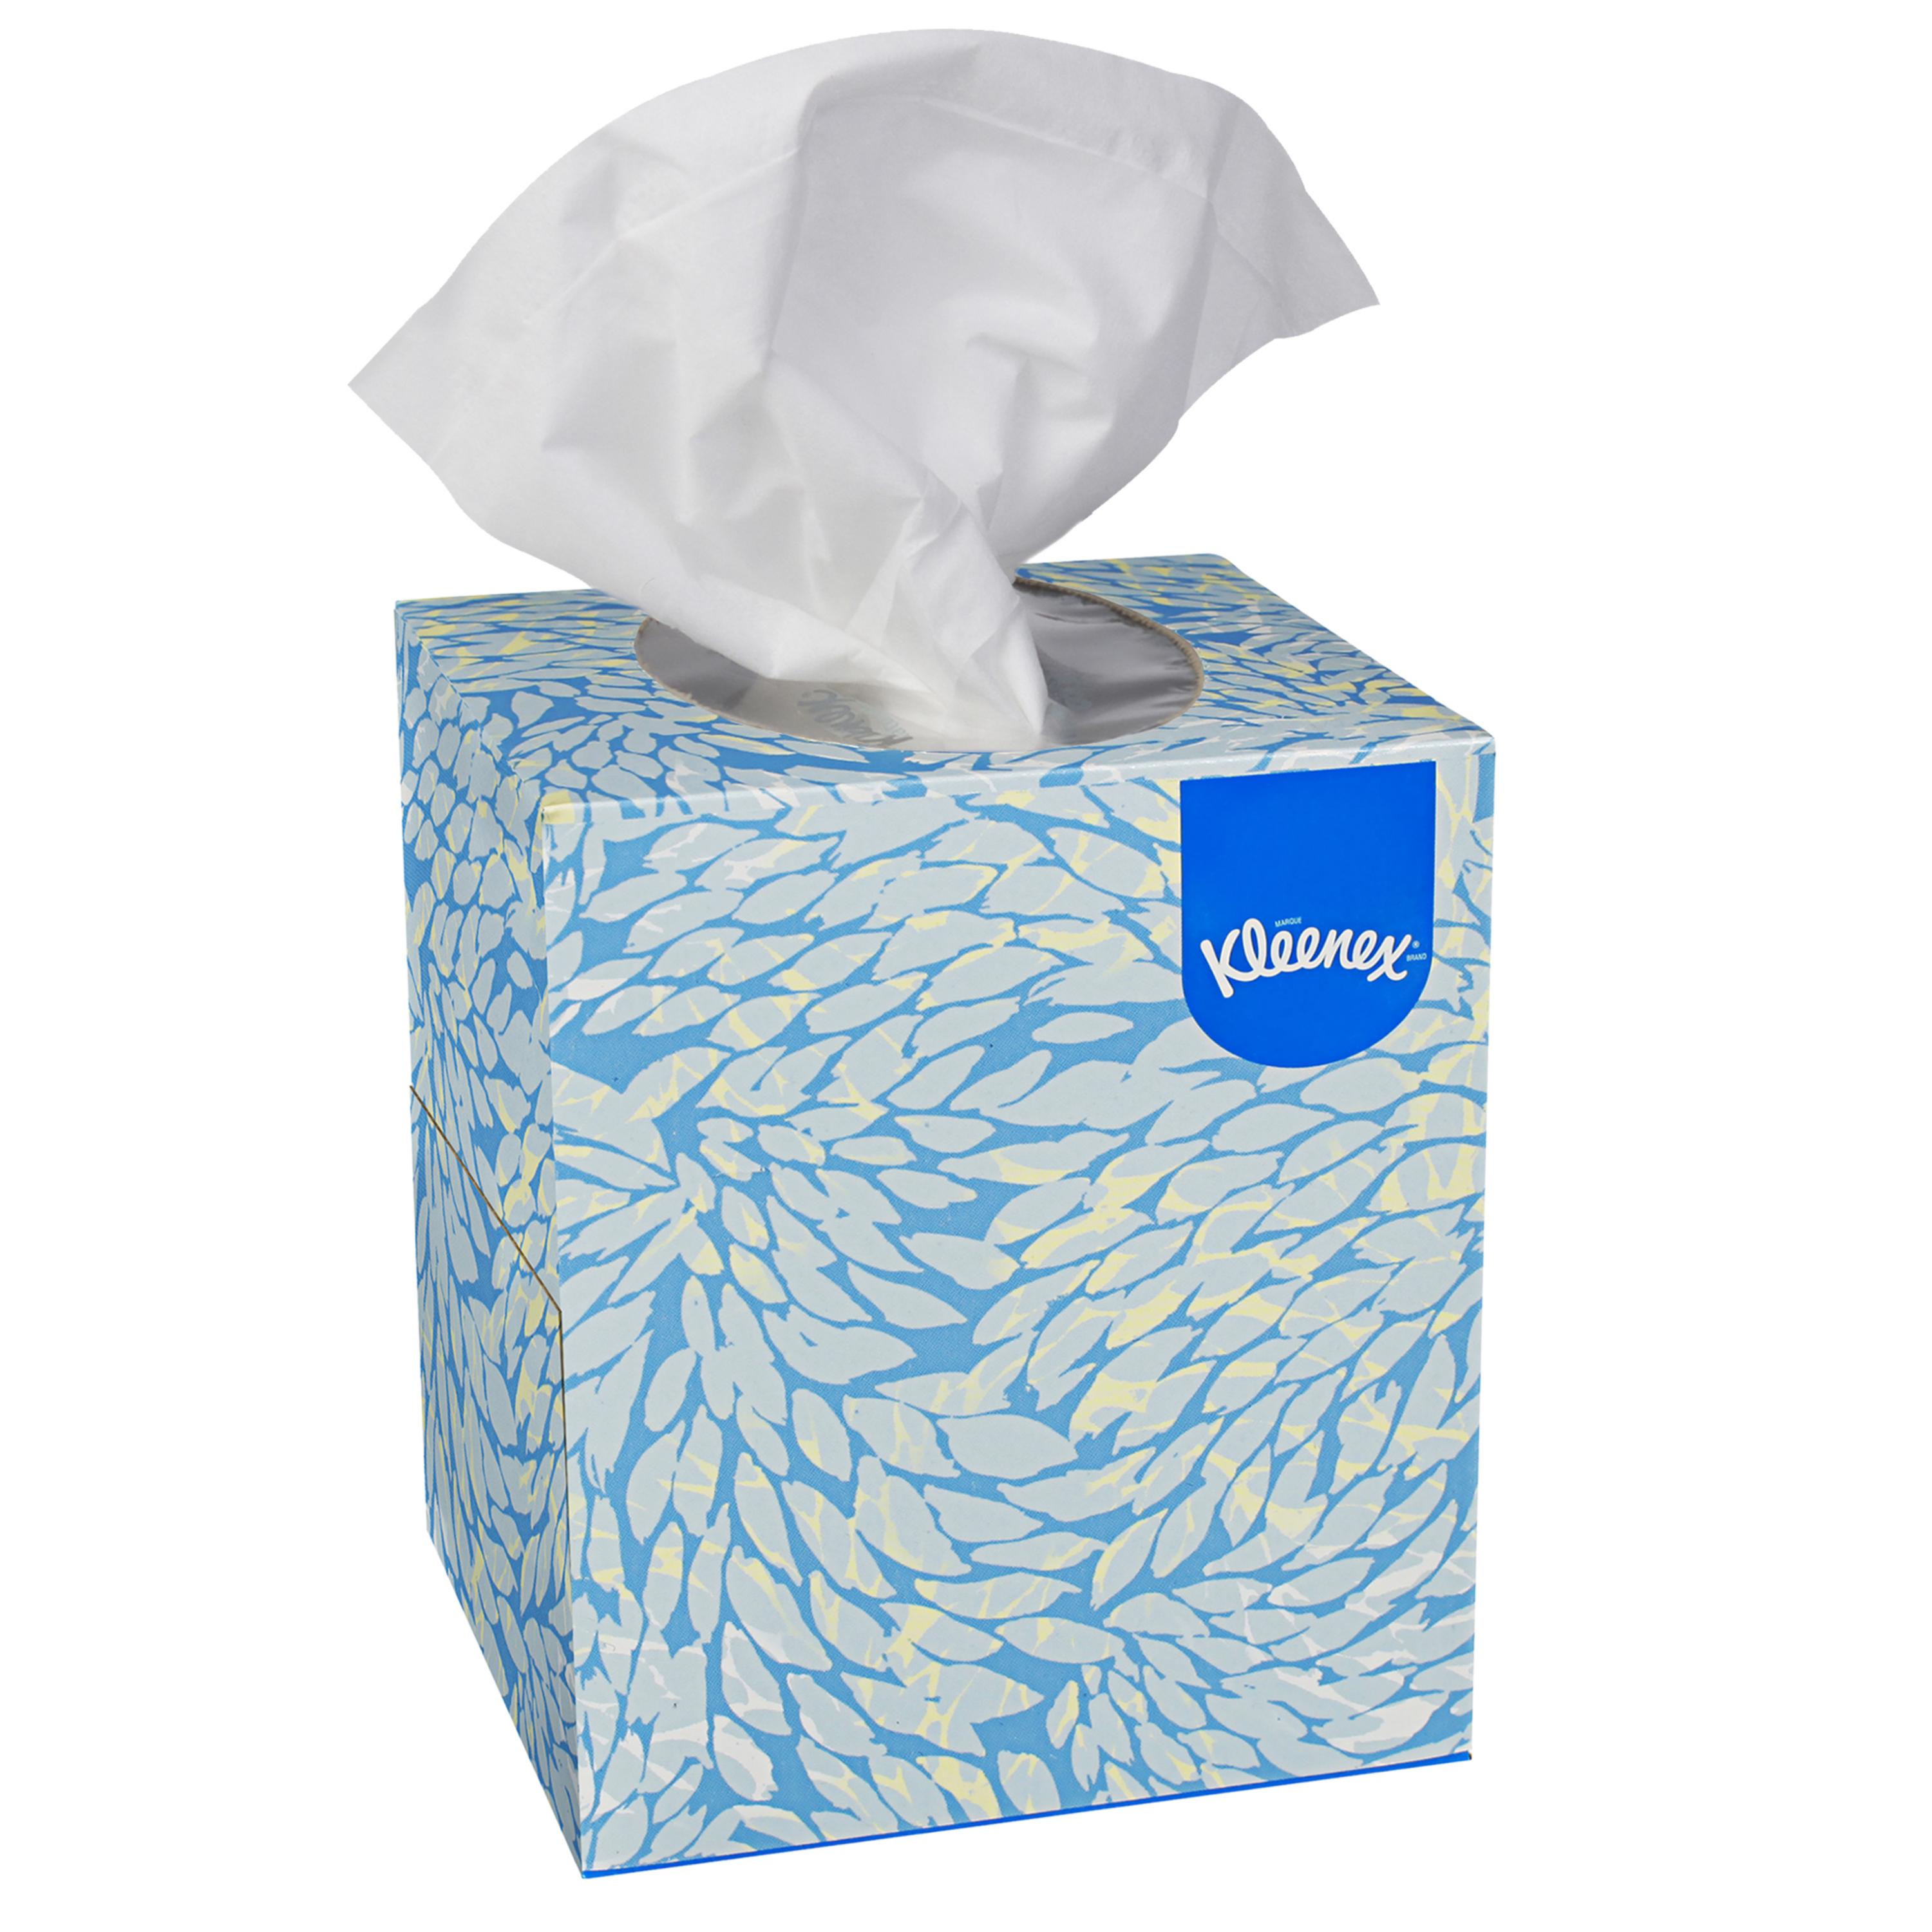 FACIAL TISSUE KLEENEX CUBE BOX 36 BOXES OF 95